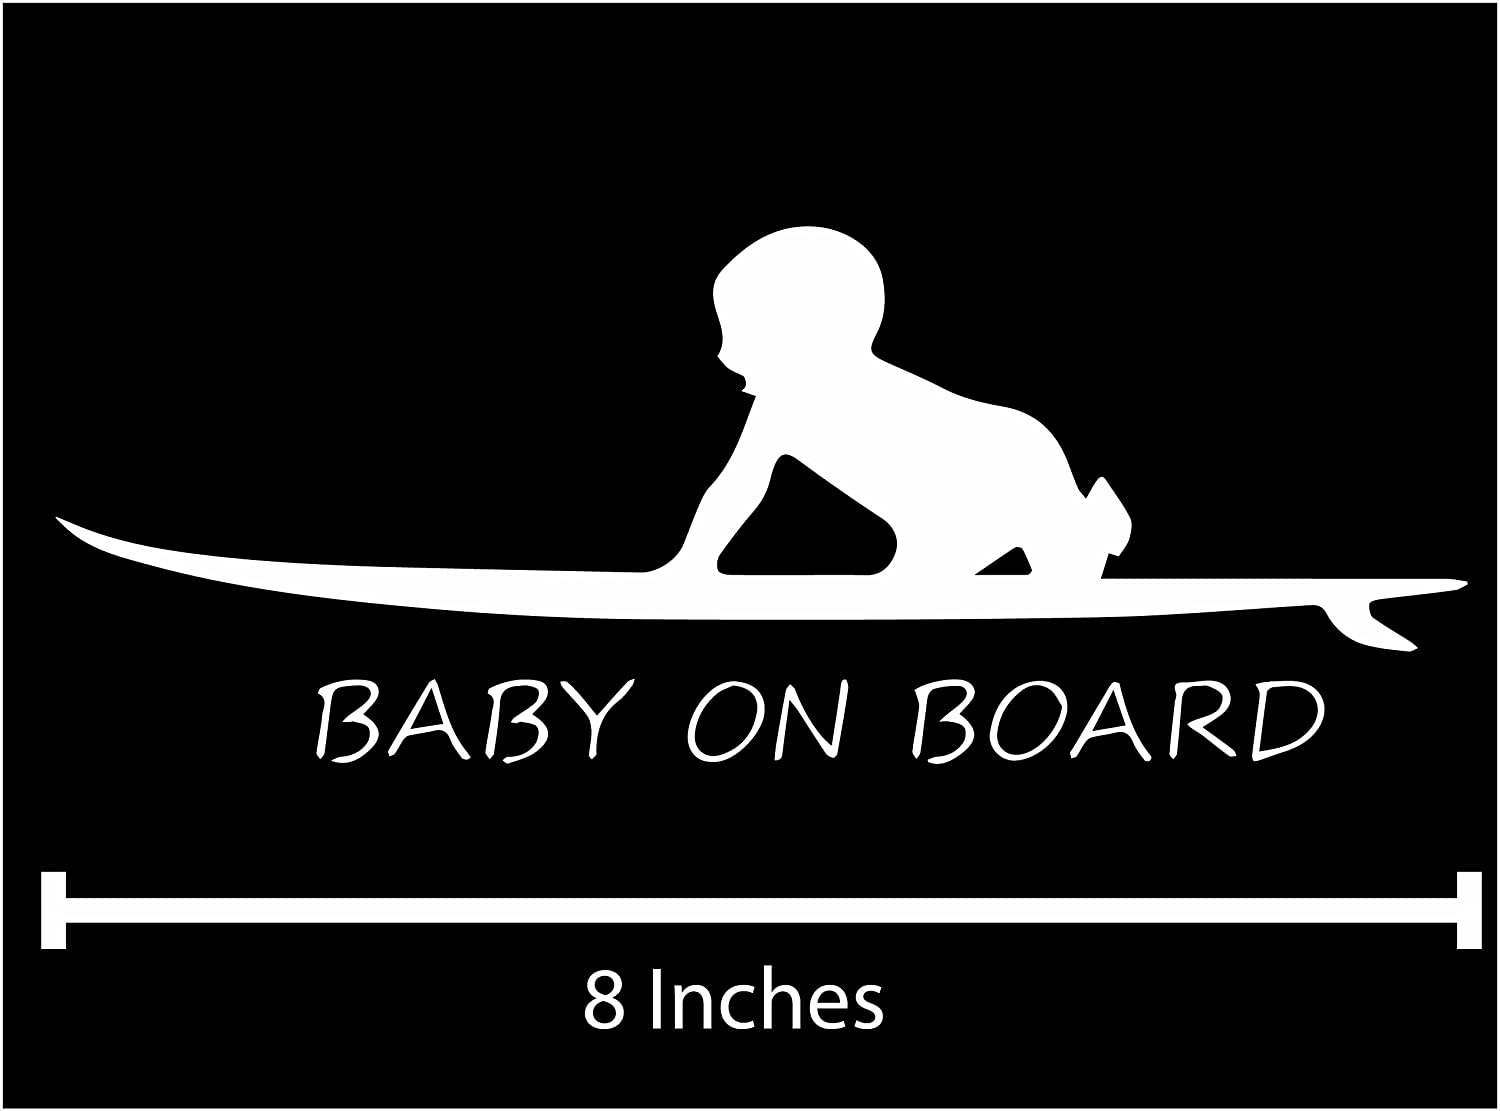 Baby on board surfing die cut vinyl car decal wall sticker amazon ca office products